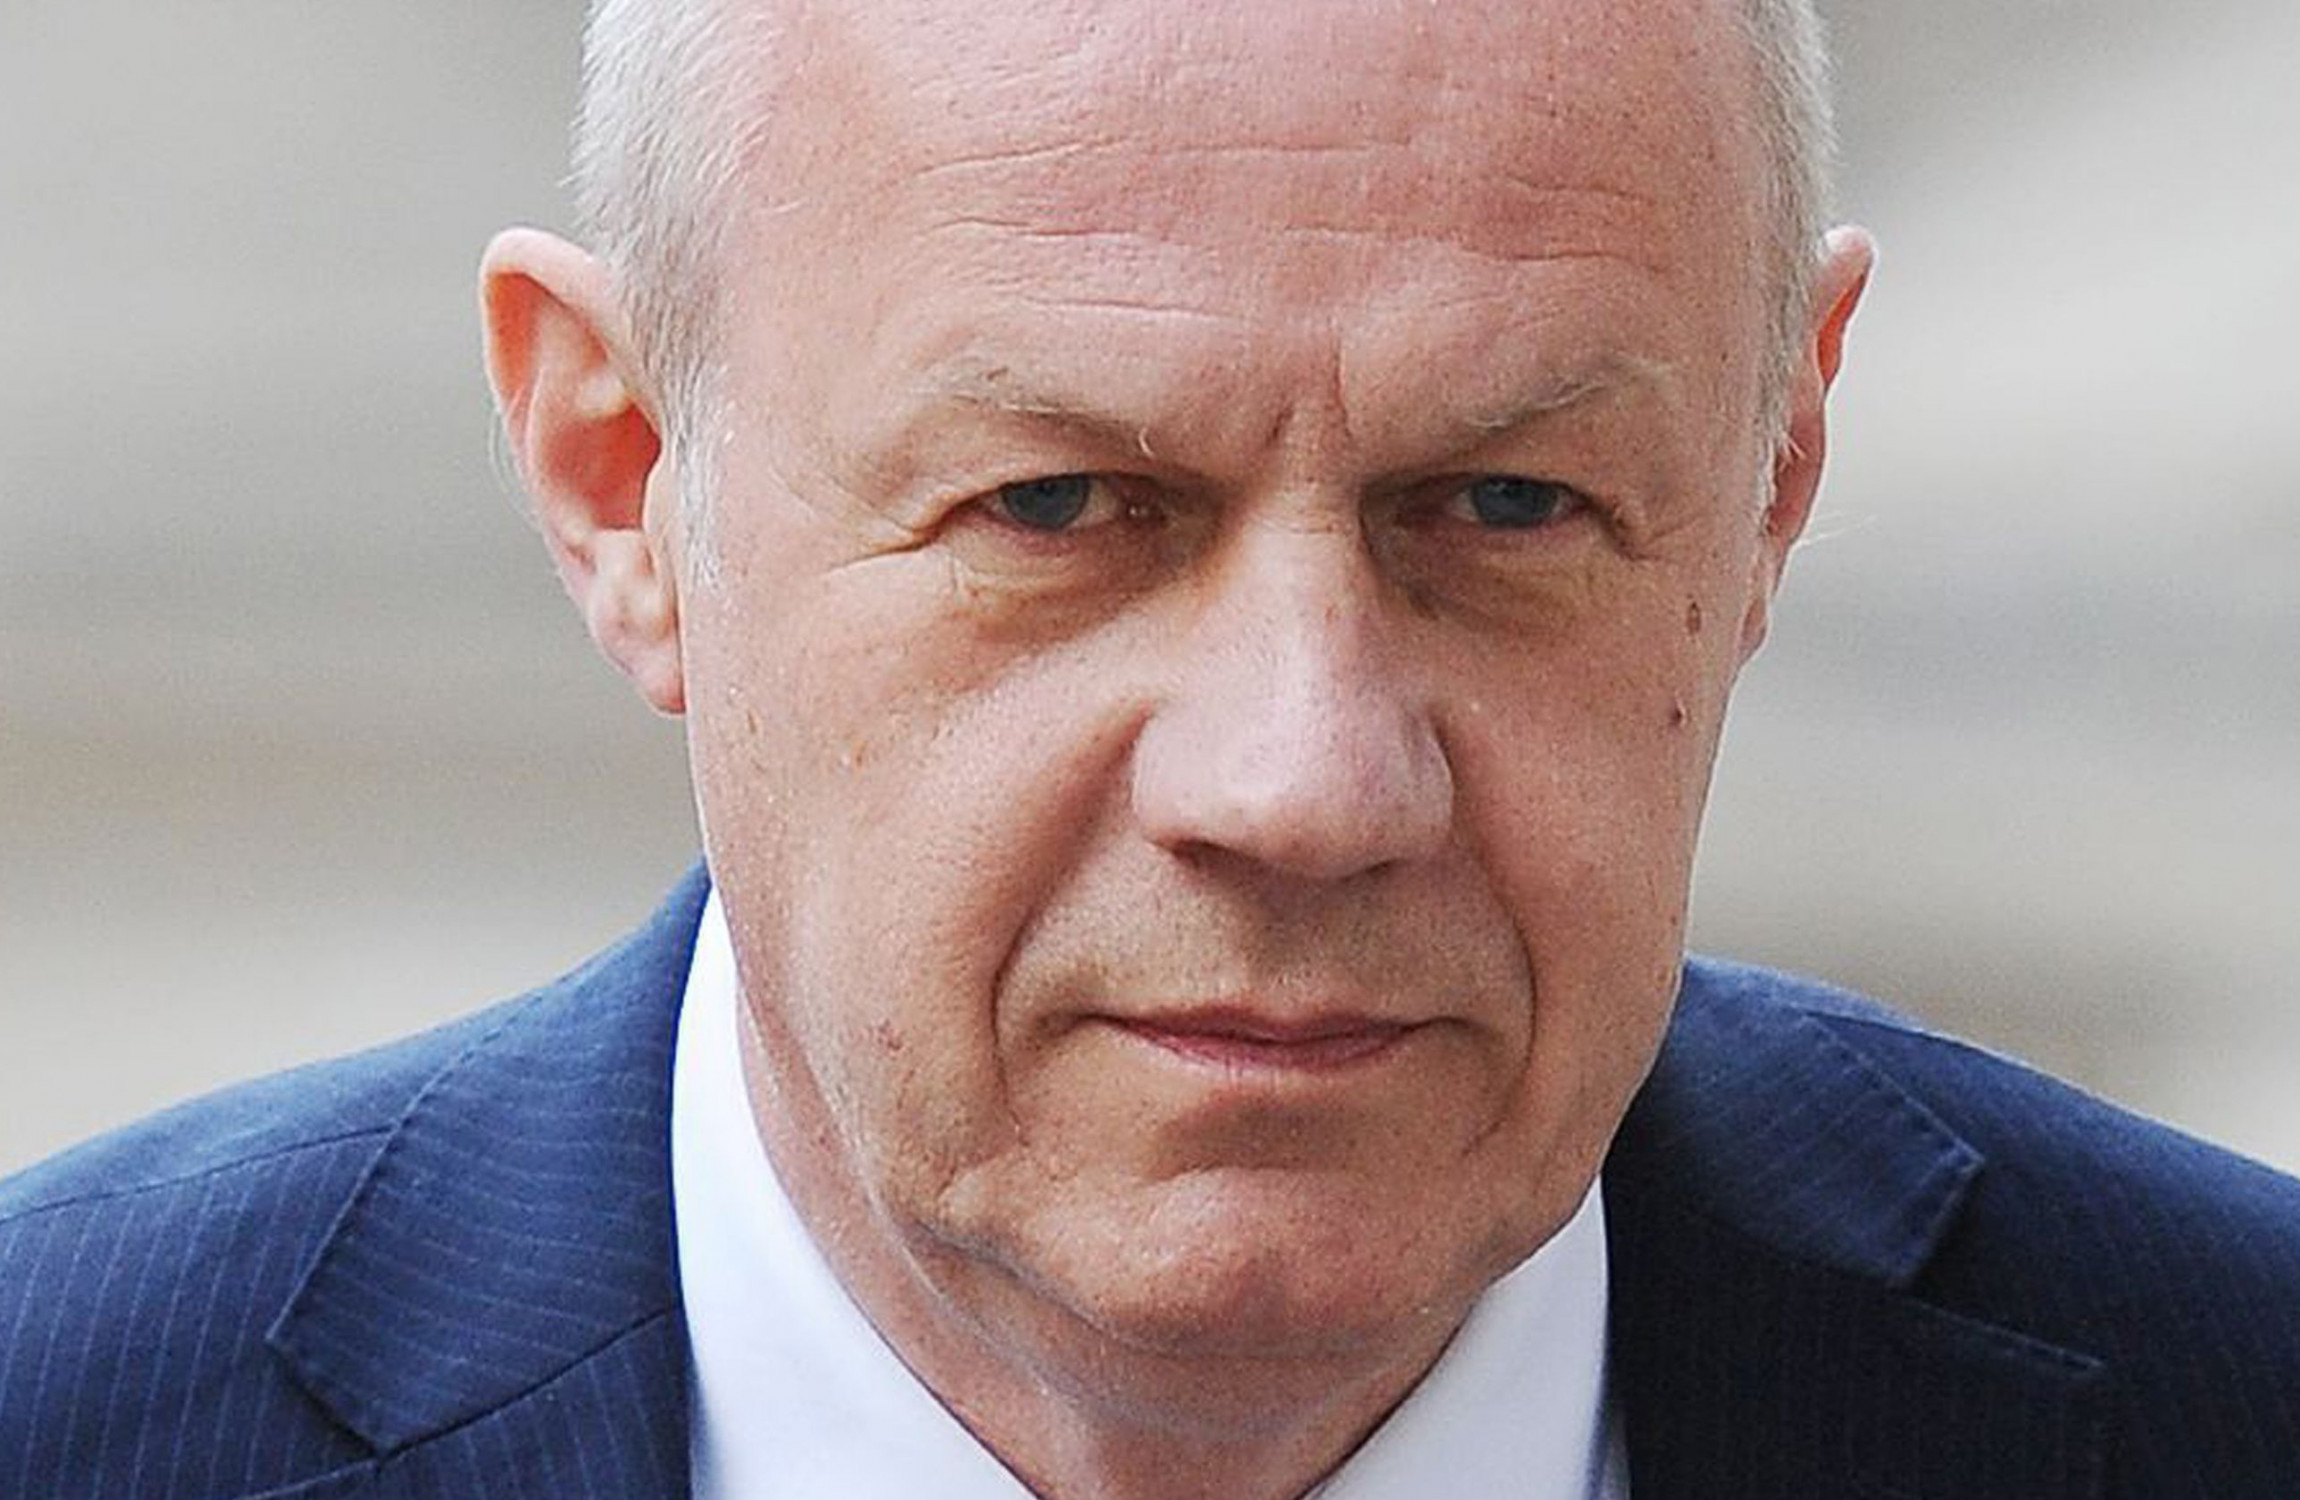 Damian Green sacked - what does this mean for Mrs May?